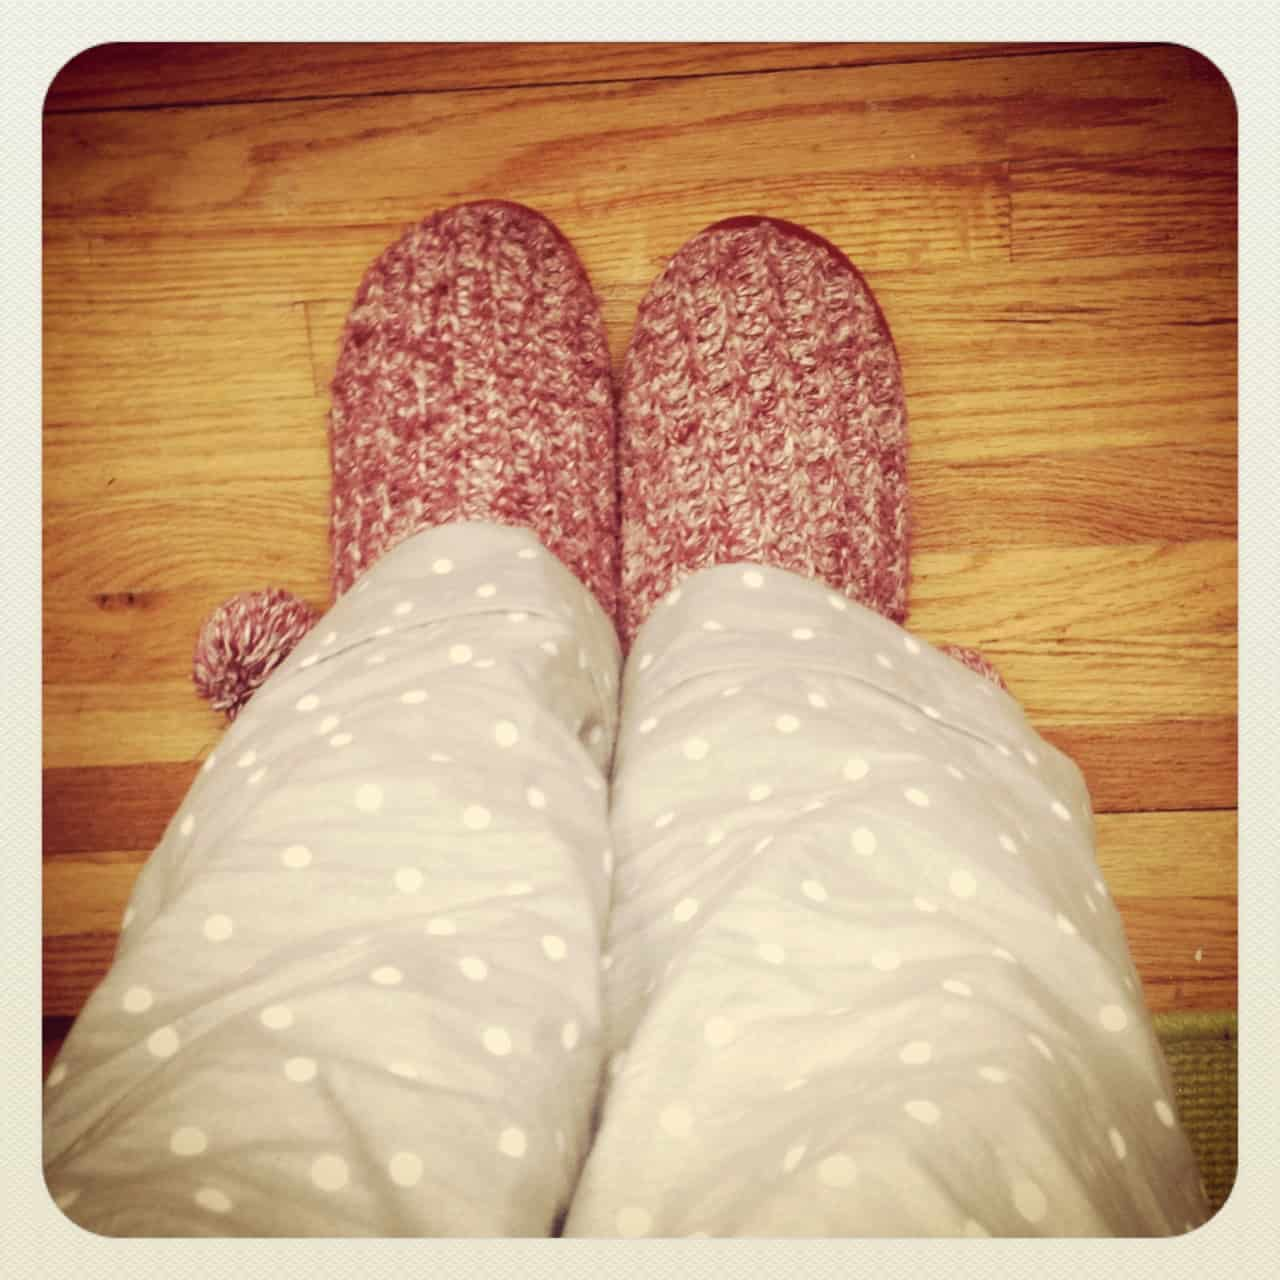 I put on my coziest slippers, and got to work.